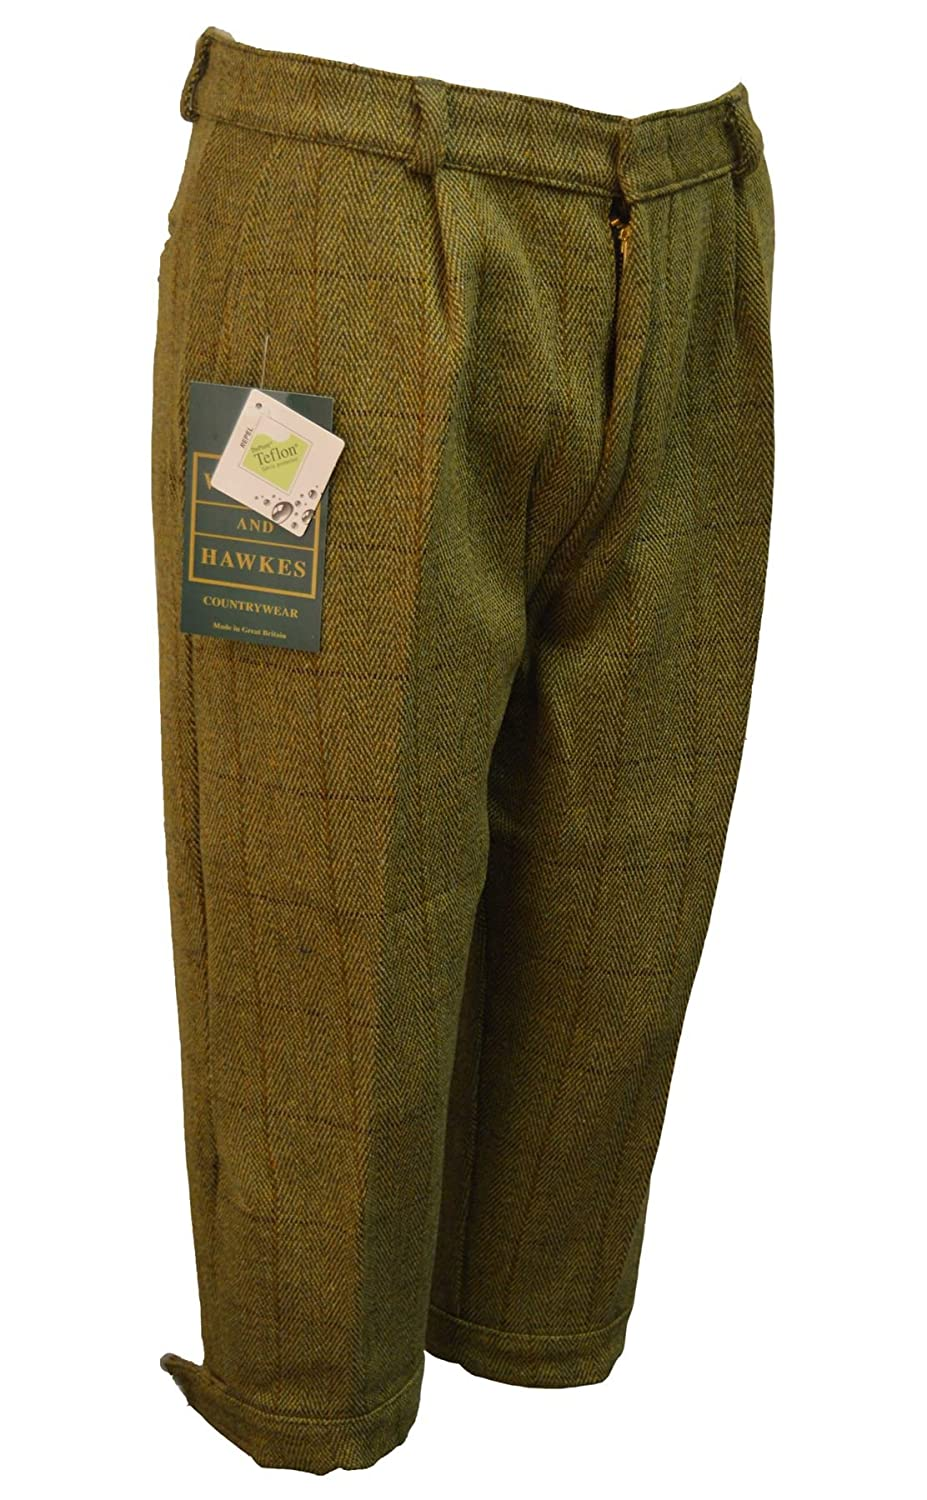 1930s Women's Pants and Beach Pajamas Walker & Hawkes - Mens Derby Tweed Shooting Plus Fours LONG Breeks Trousers - Light Sage - 32-42 $76.99 AT vintagedancer.com